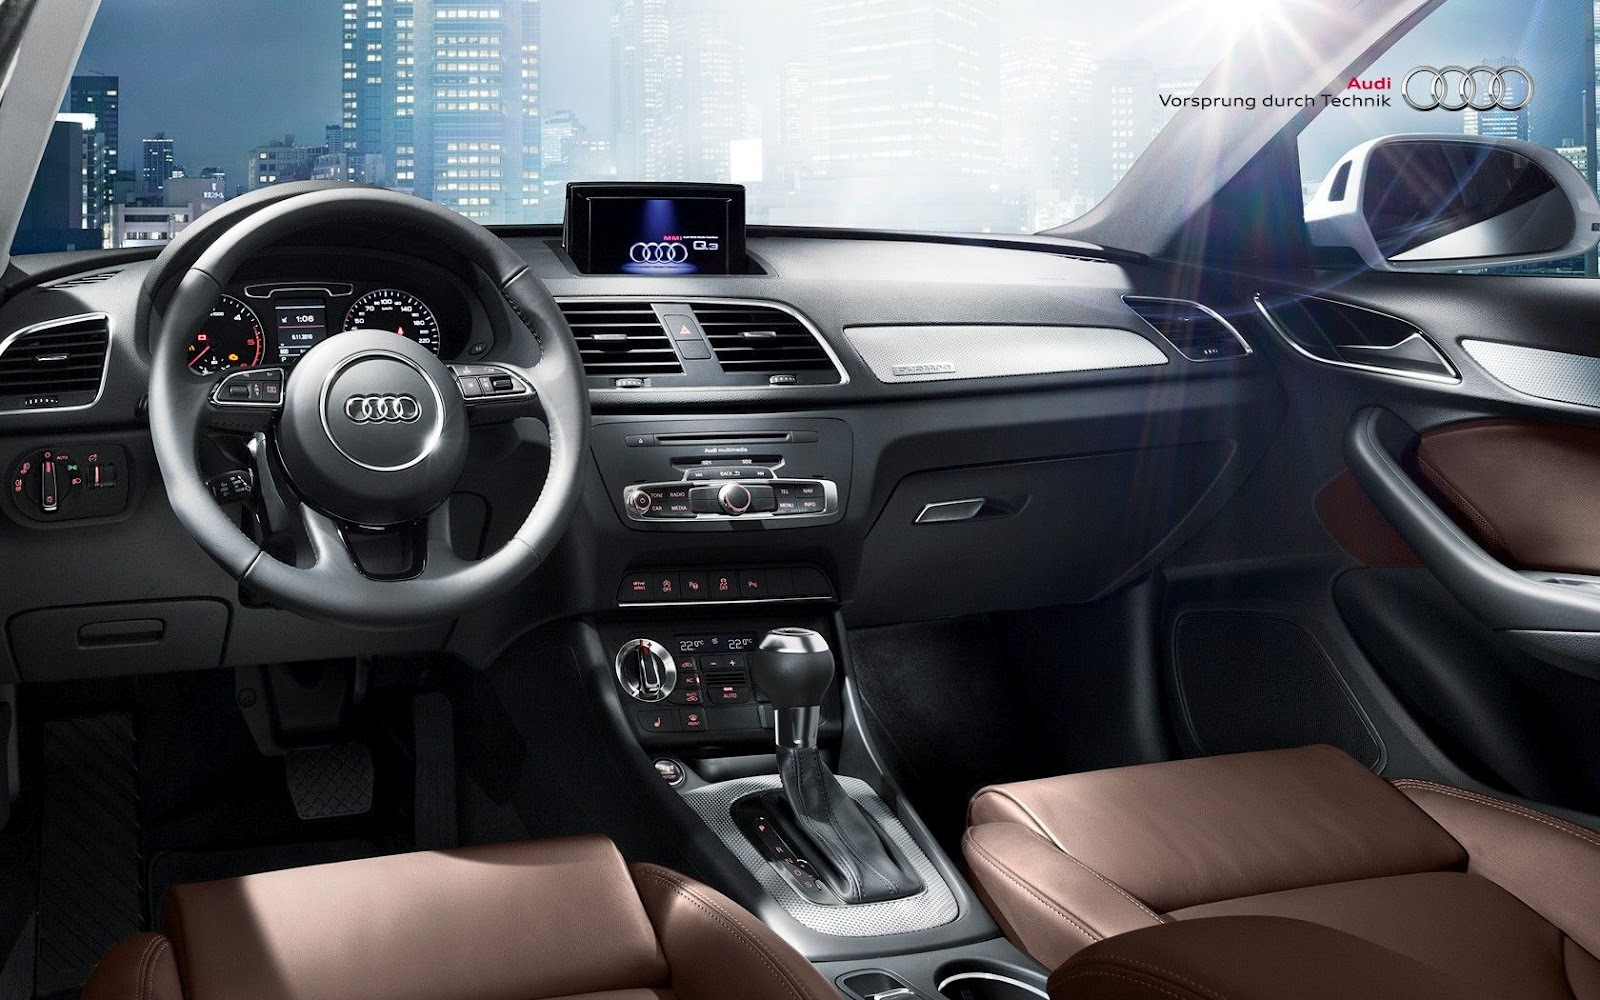 Audi Q In India ReviewSpecification Road Test Blog - Audi q3 price